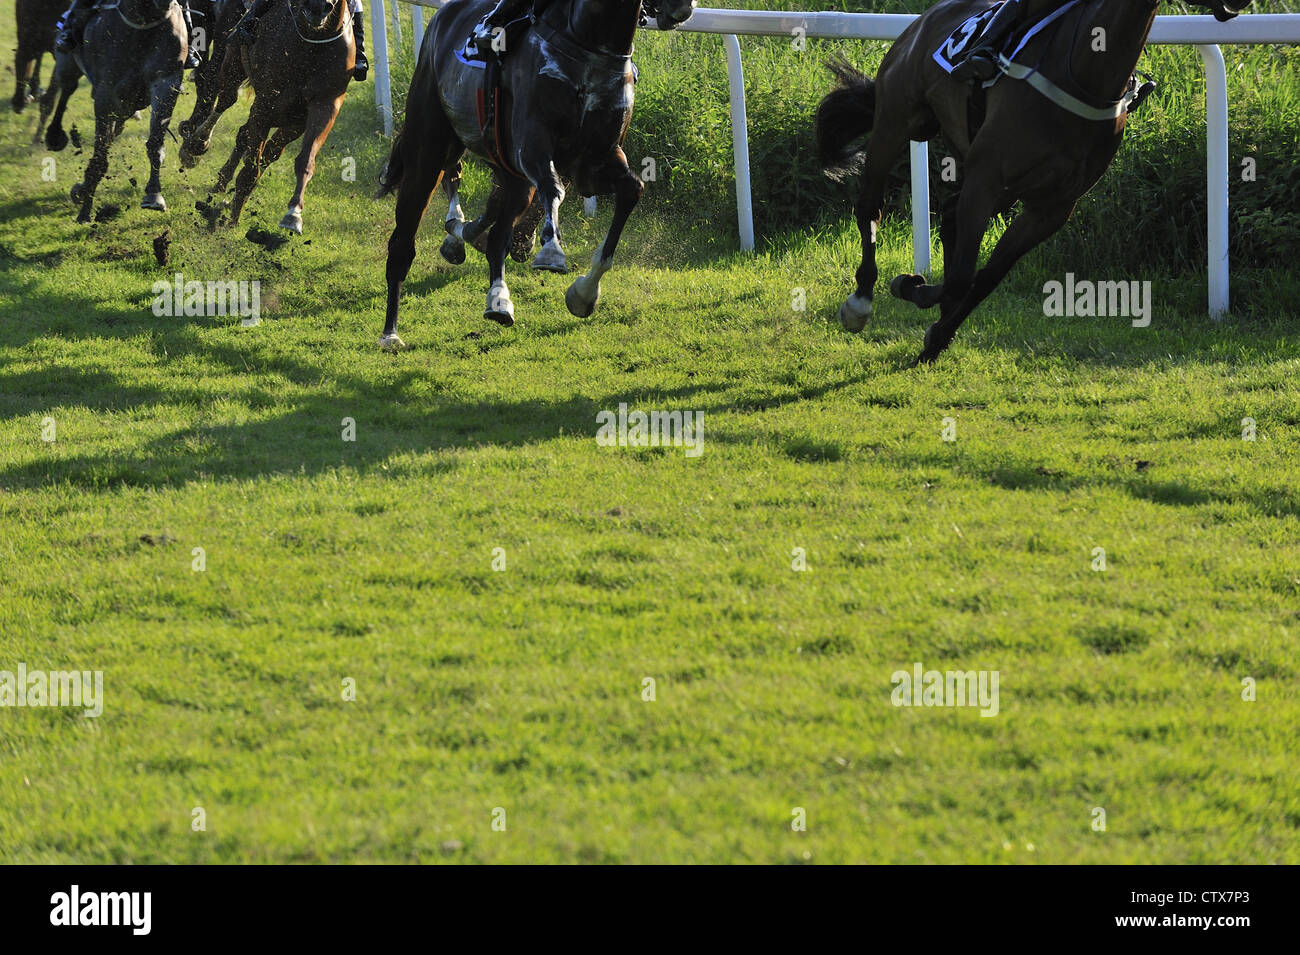 Horse race showing only their lower body and legs - Stock Image